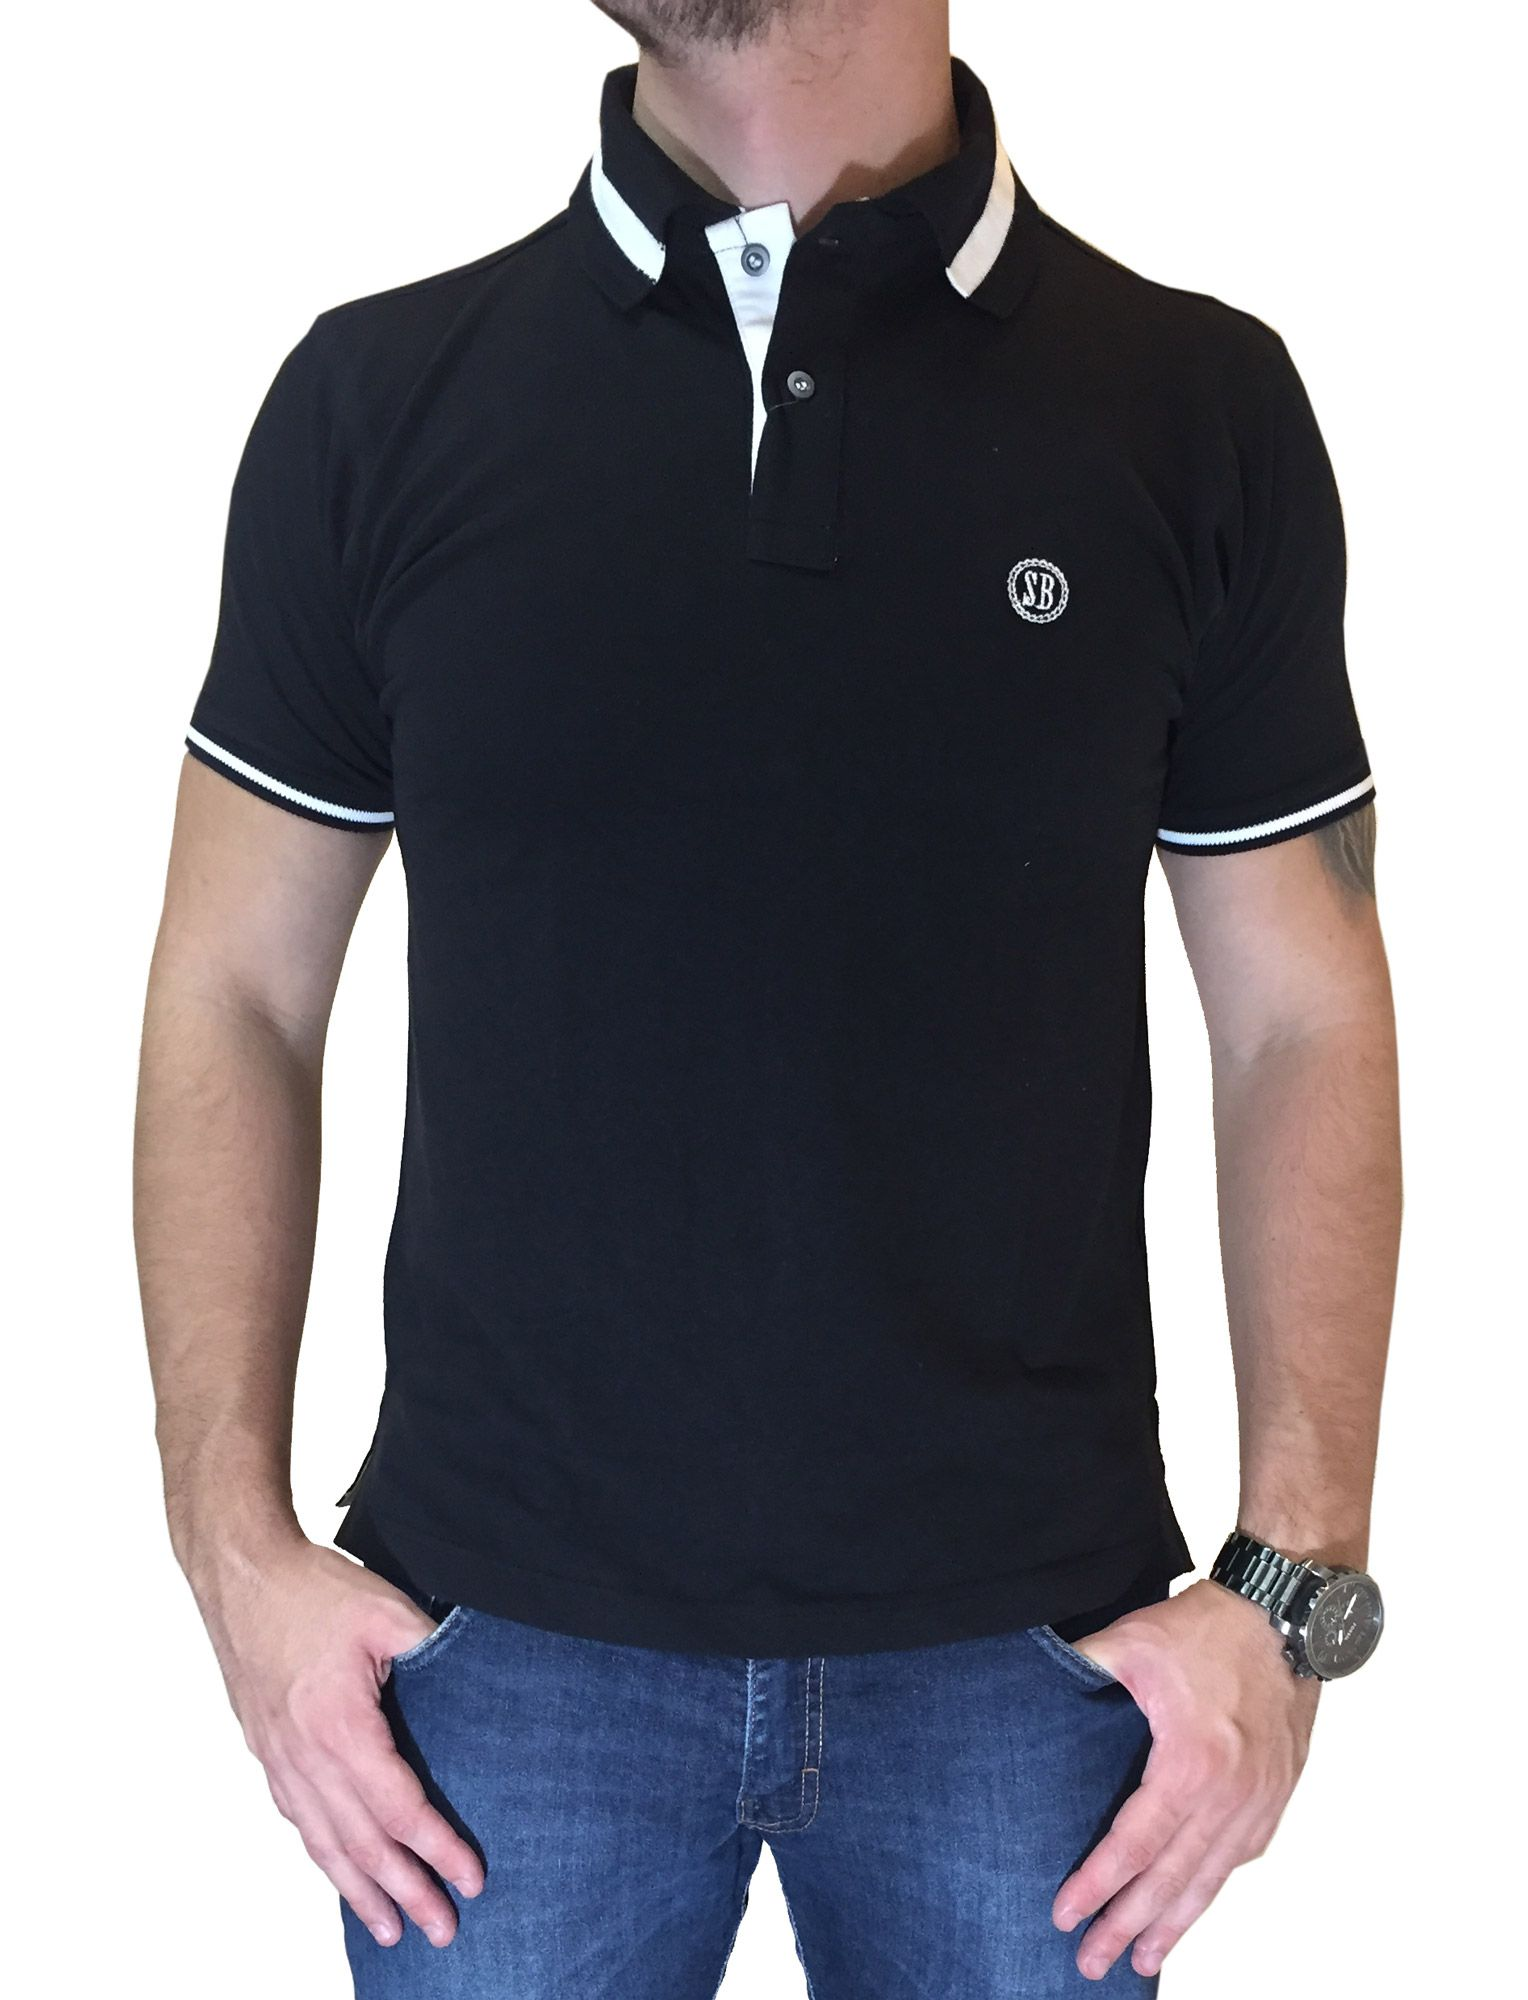 Polo Masculina Smith Brother's Preta com Bordado Branco